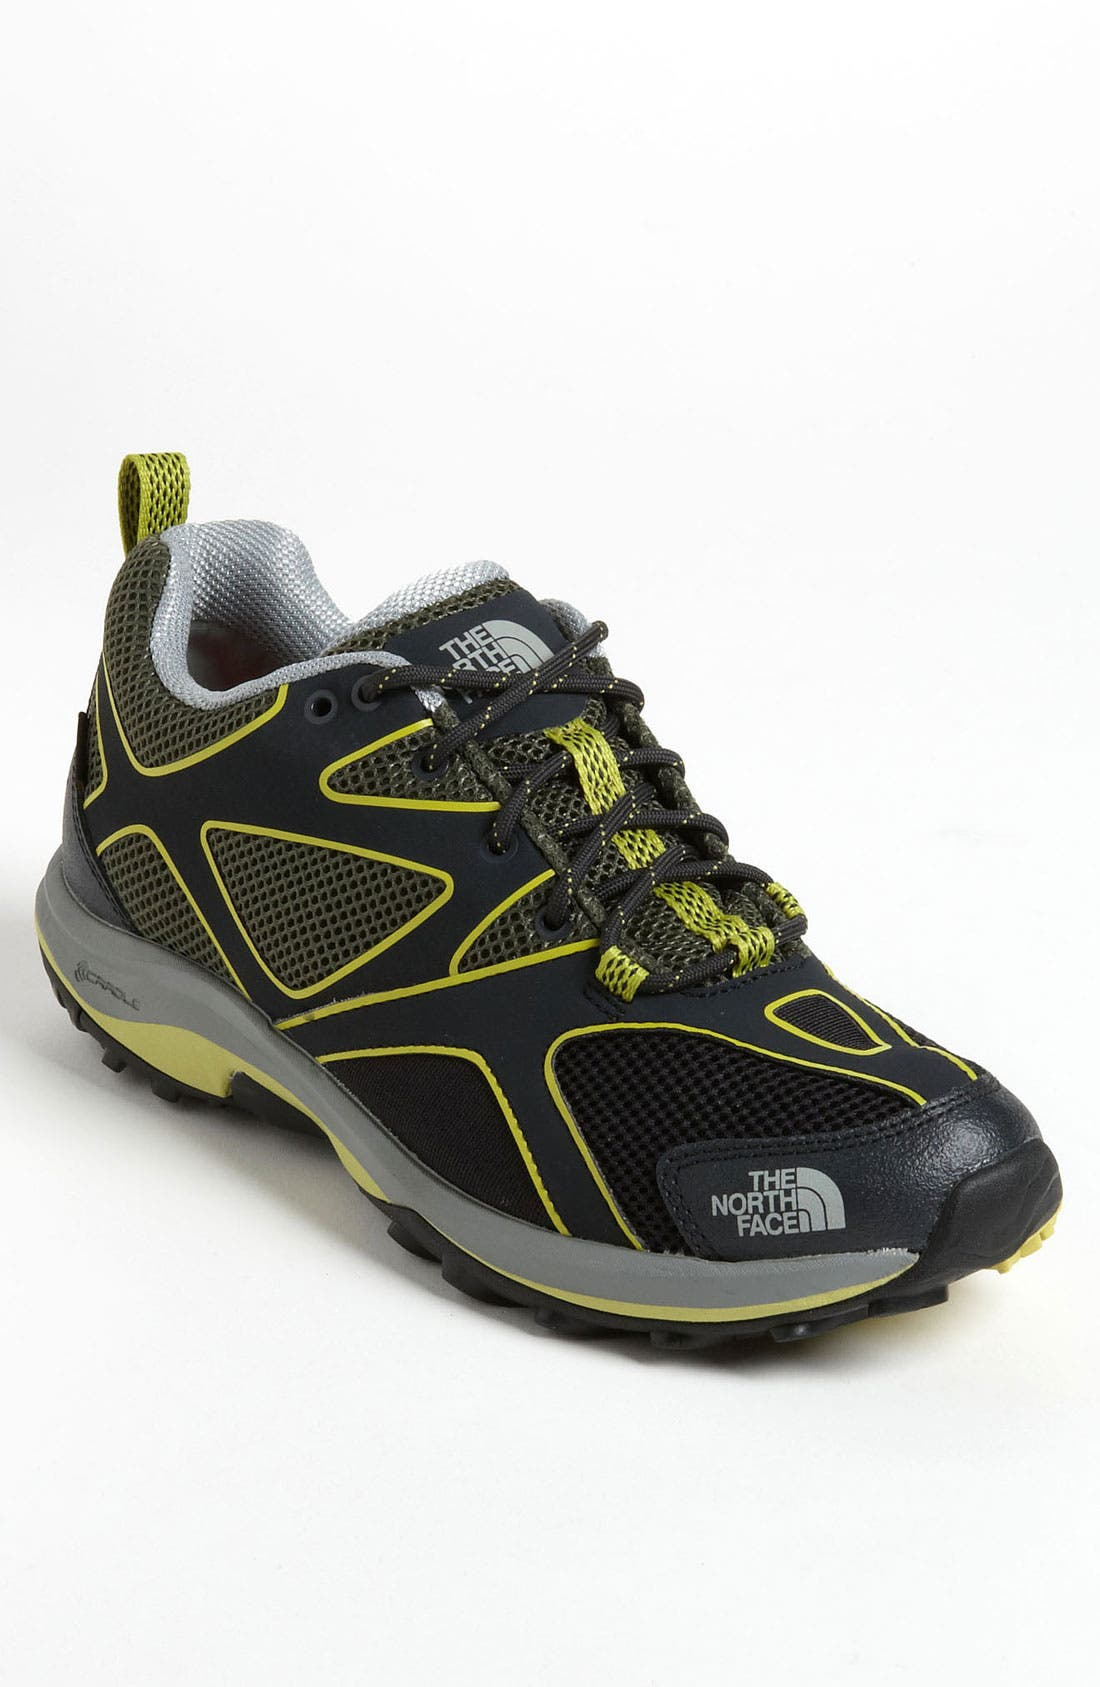 Alternate Image 1 Selected - The North Face 'Hedgehog Guide GTX' Hiking Shoe